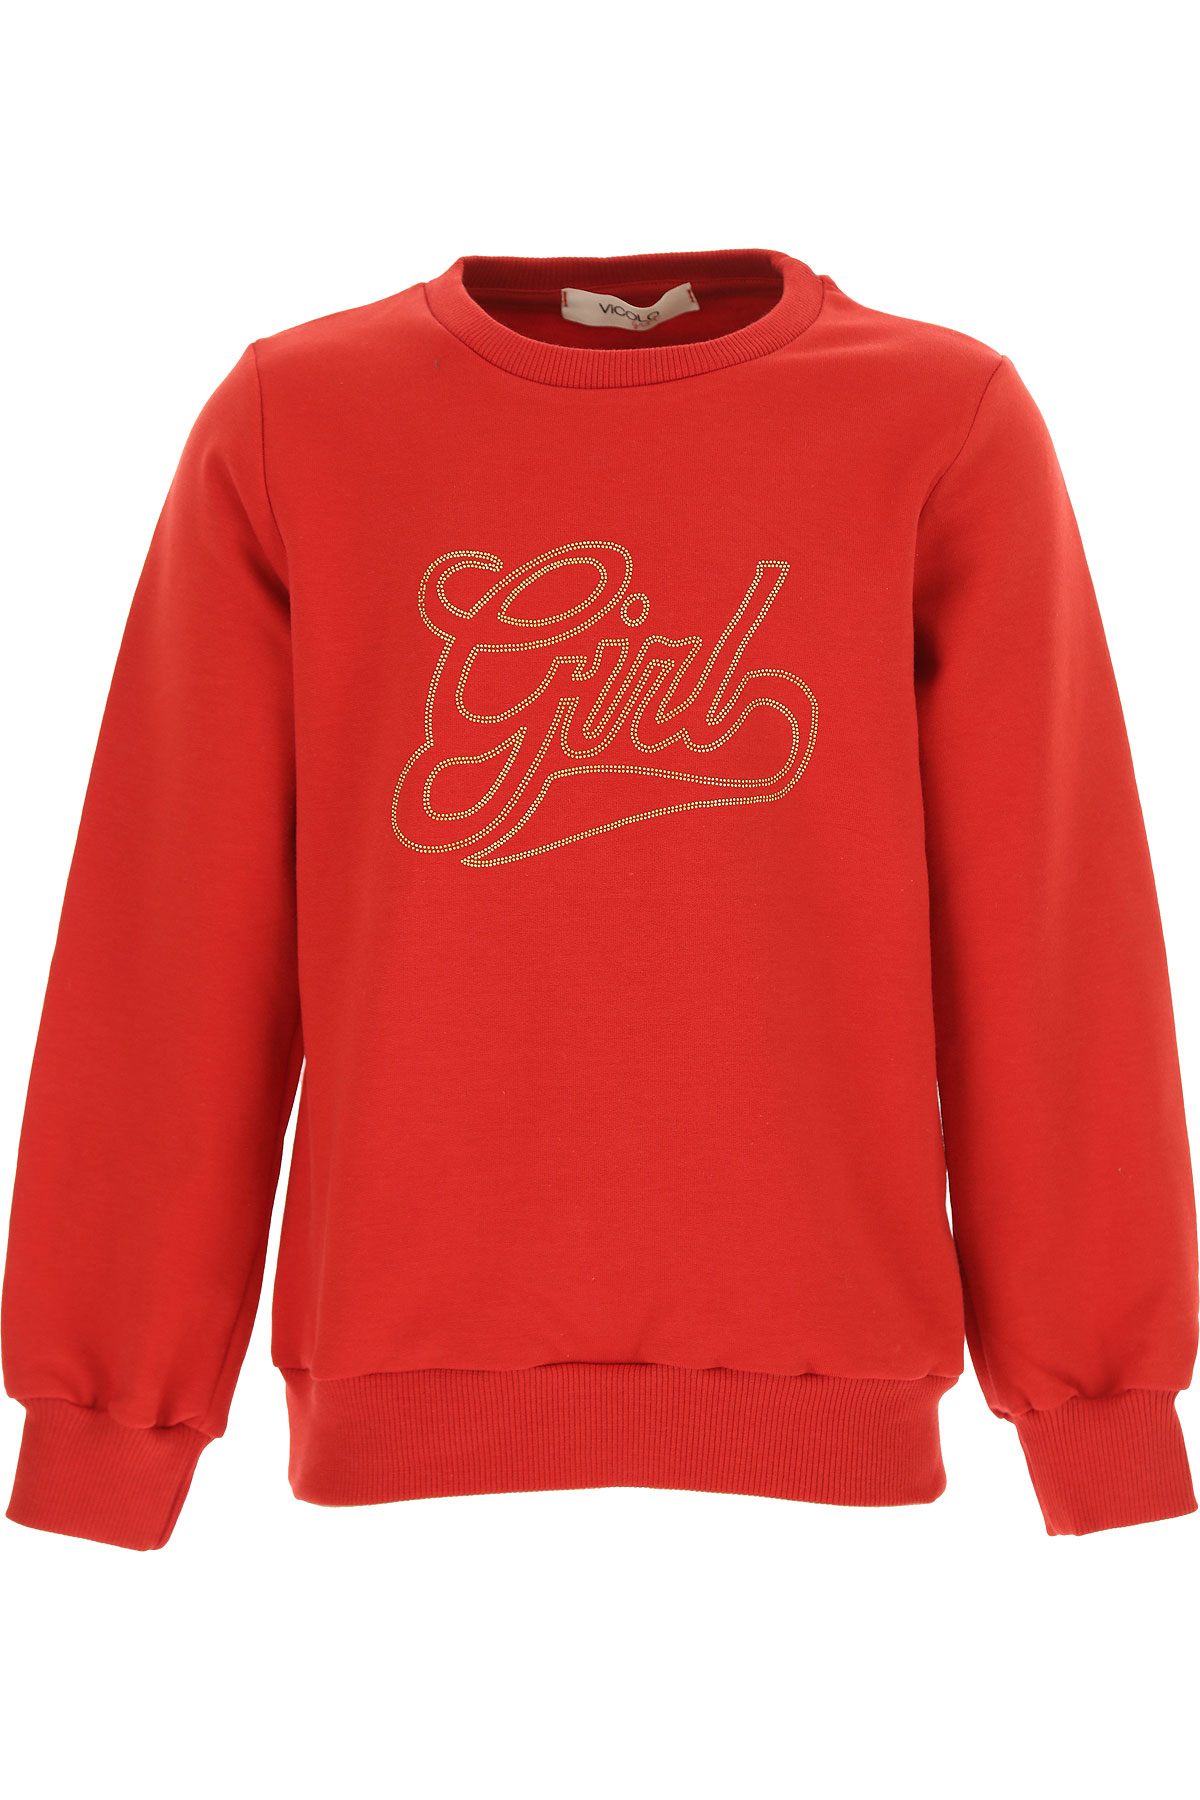 Vicolo Kids Sweaters for Girls On Sale, Red, Cotton, 2019, 12Y 14Y 6Y 8Y